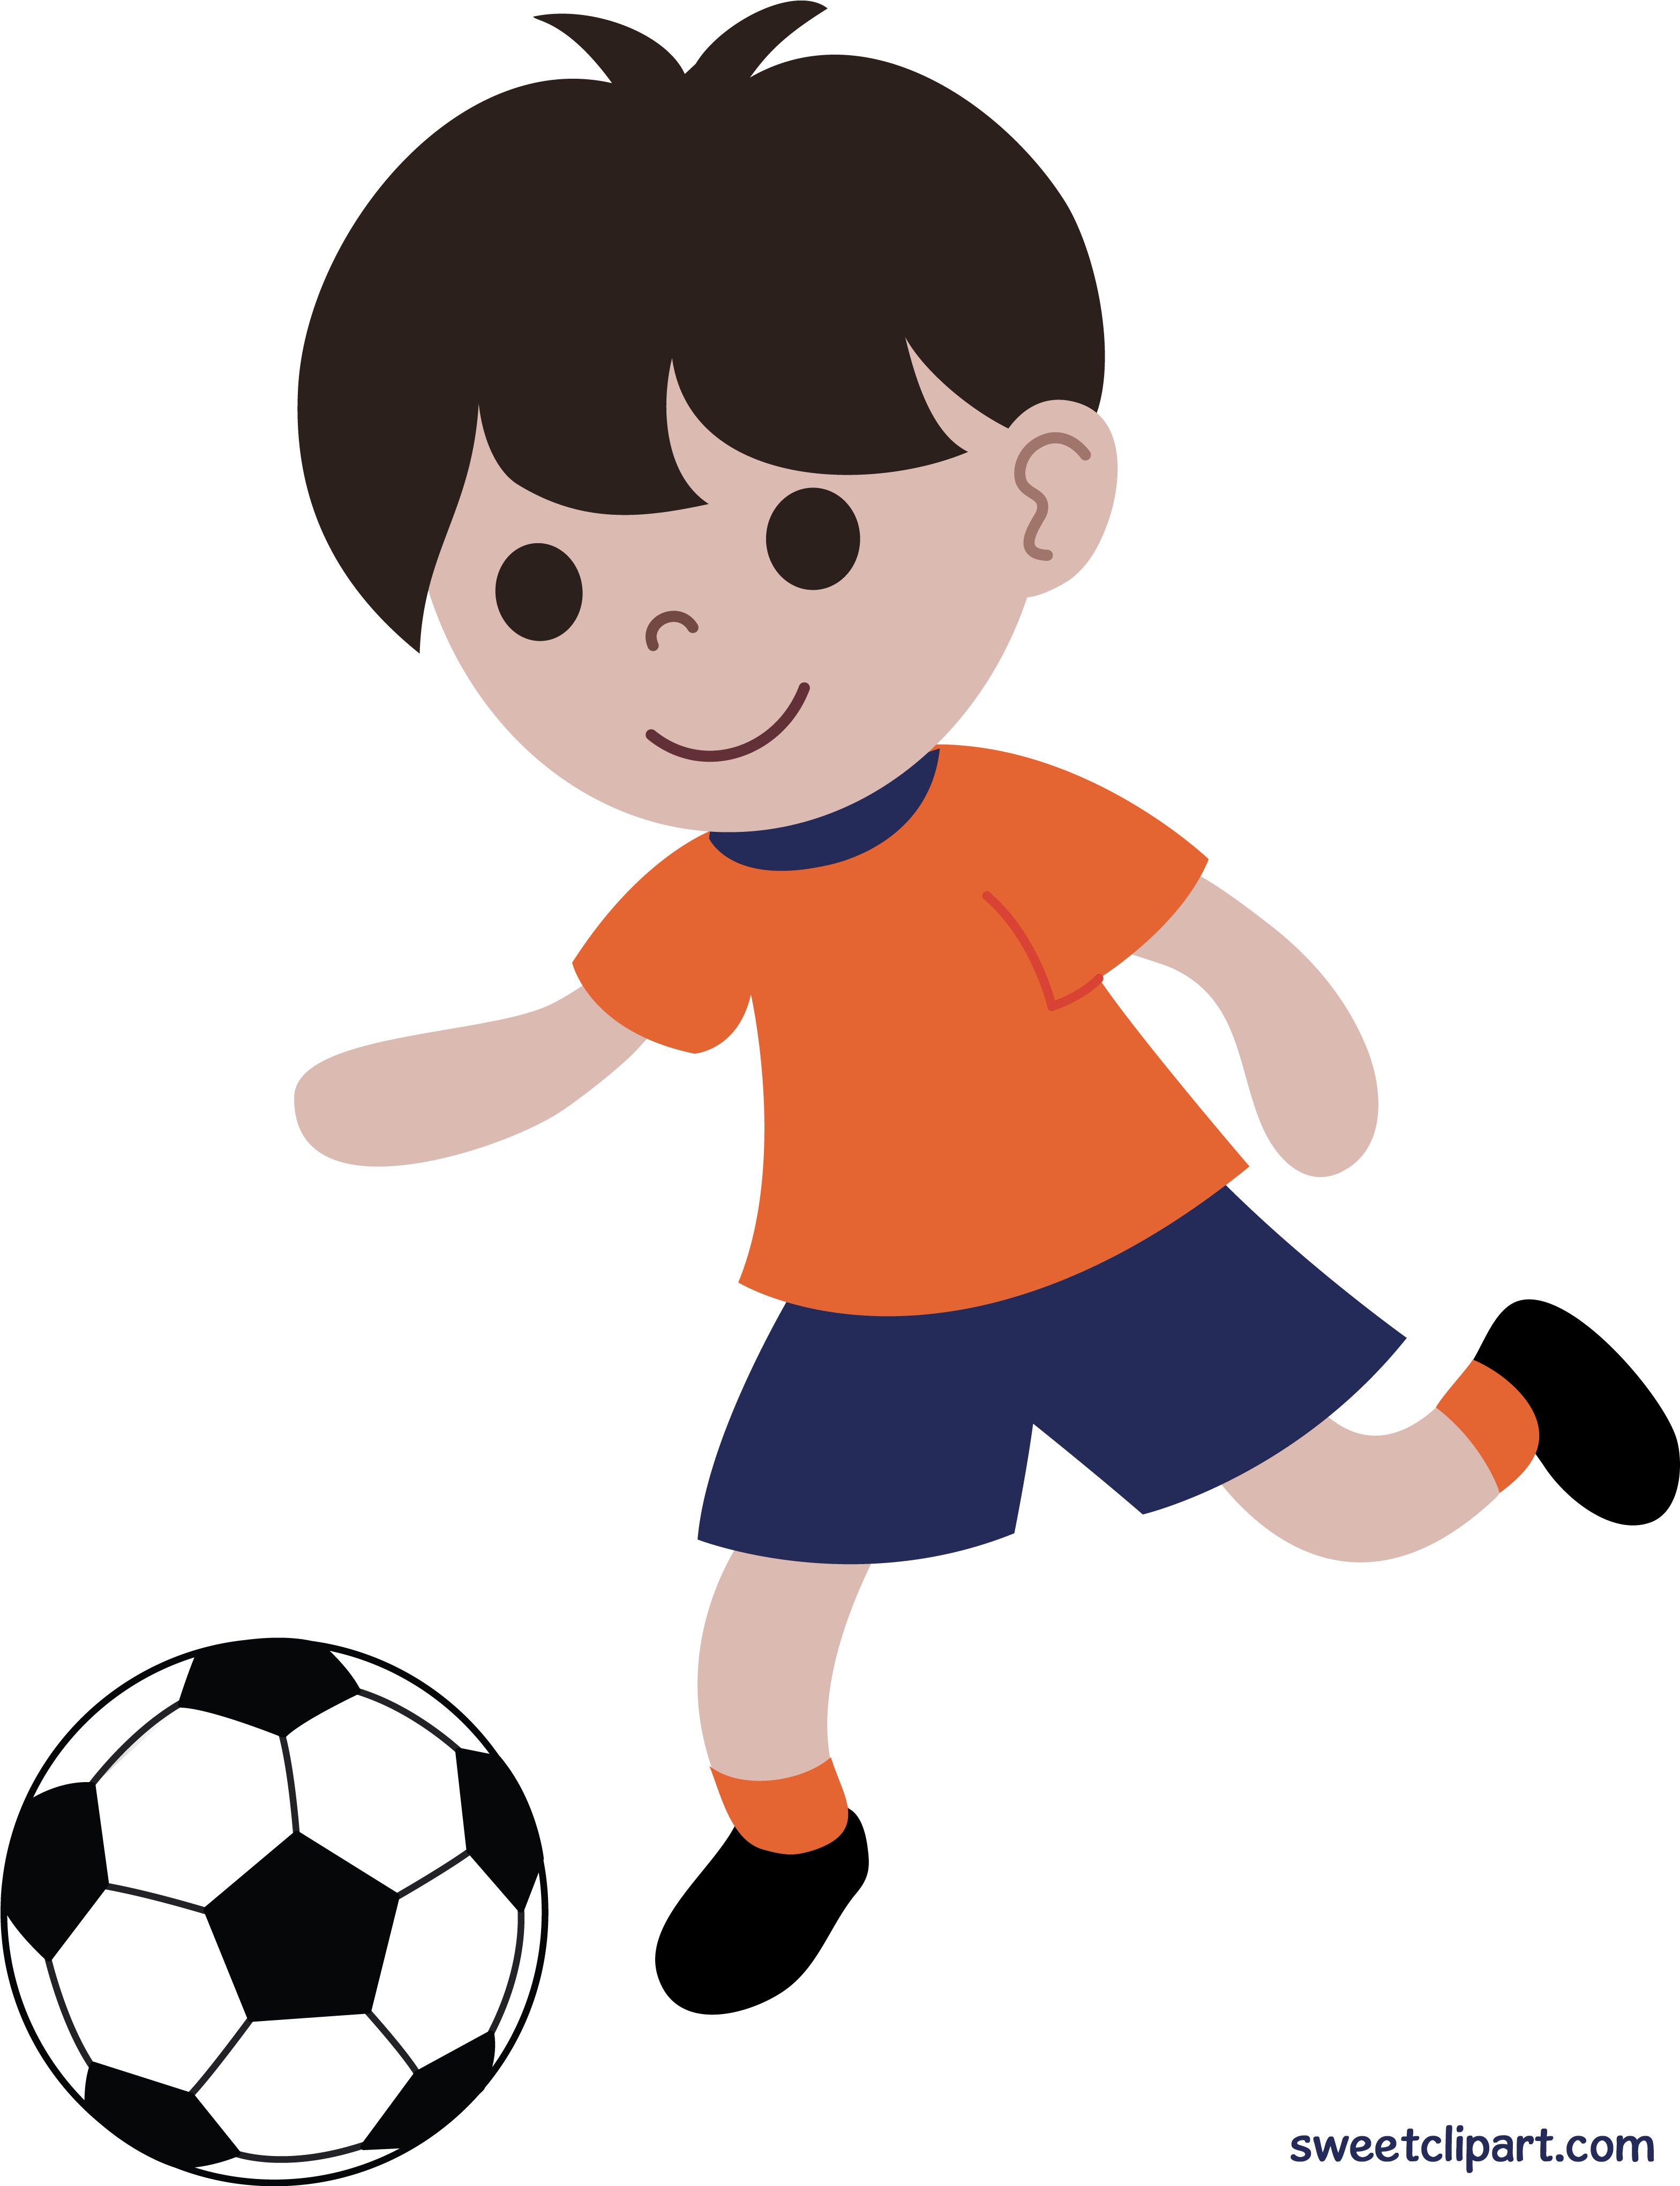 Download High Quality soccer clipart boy Transparent PNG.